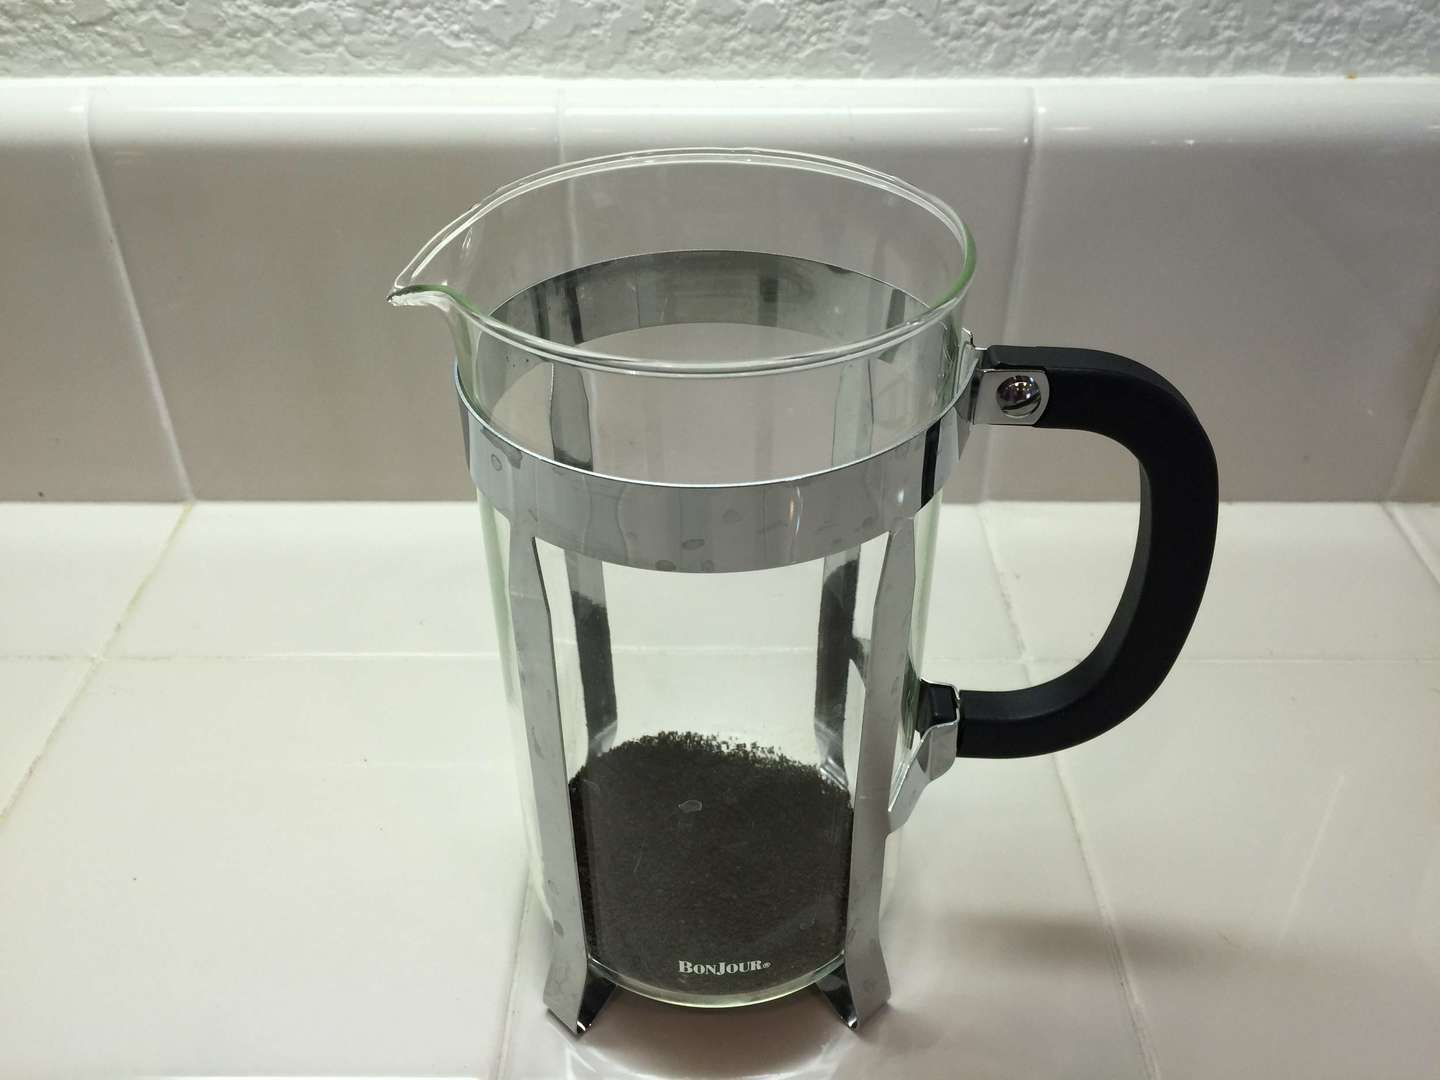 french press filled with coffee grounds